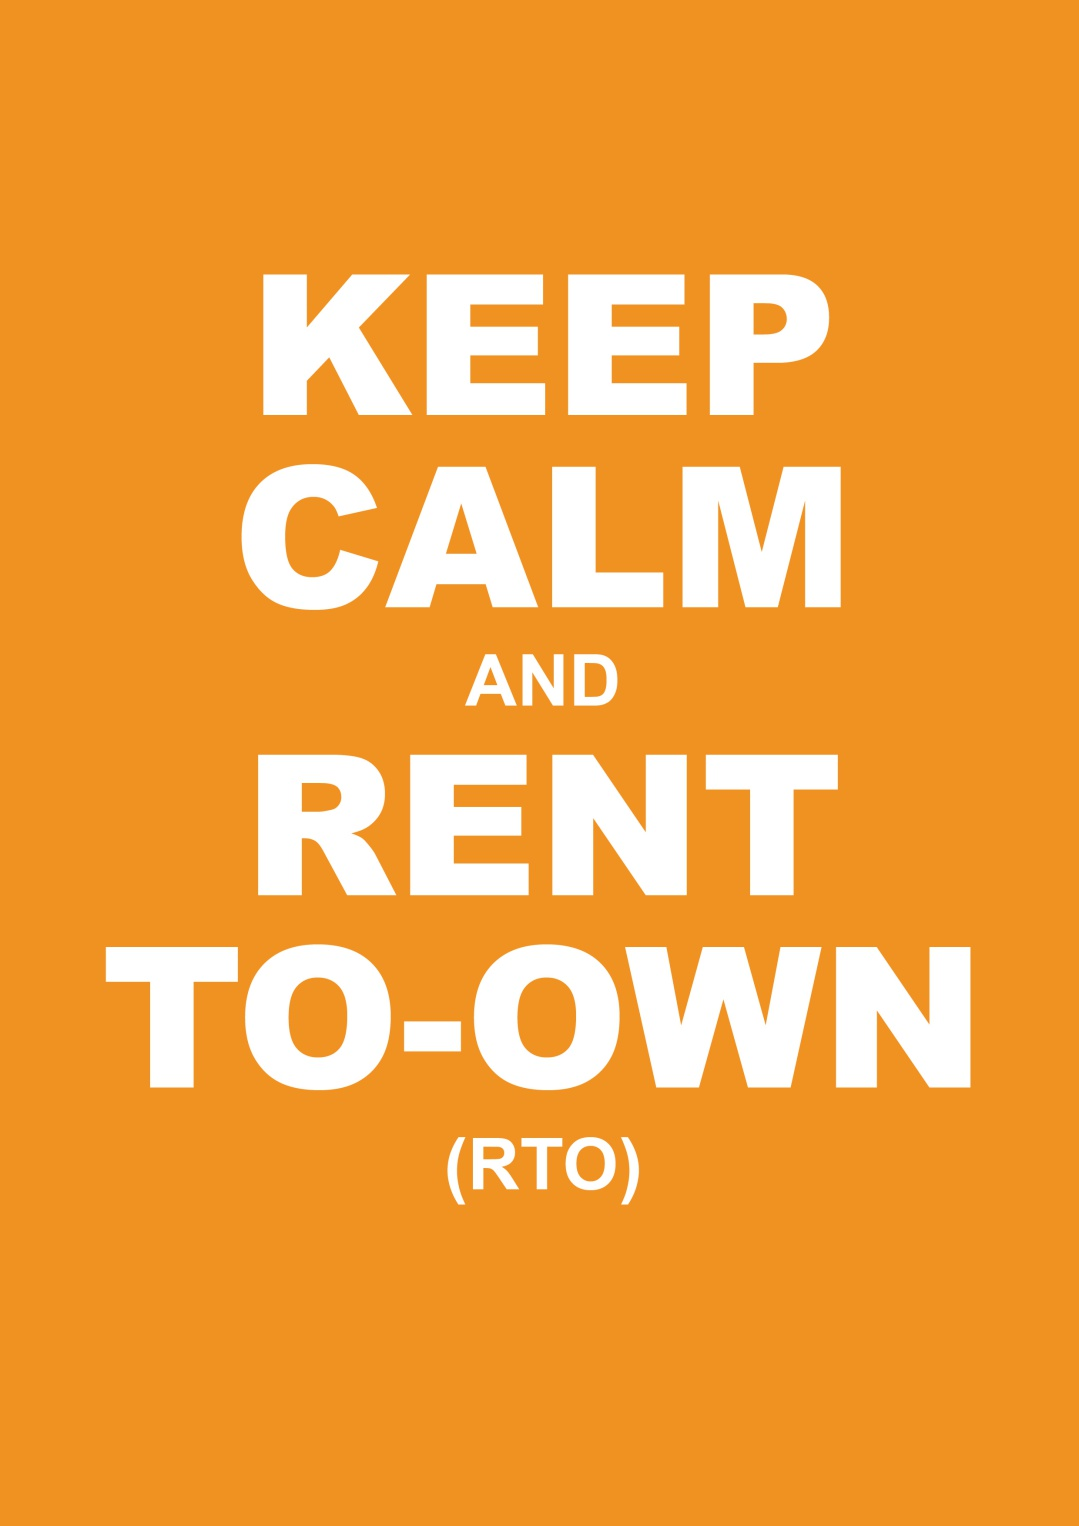 The Rent-To-Own (RTO) scheme is one innovative way developers such as TAHPS are offering  to assist aspiring home buyers.